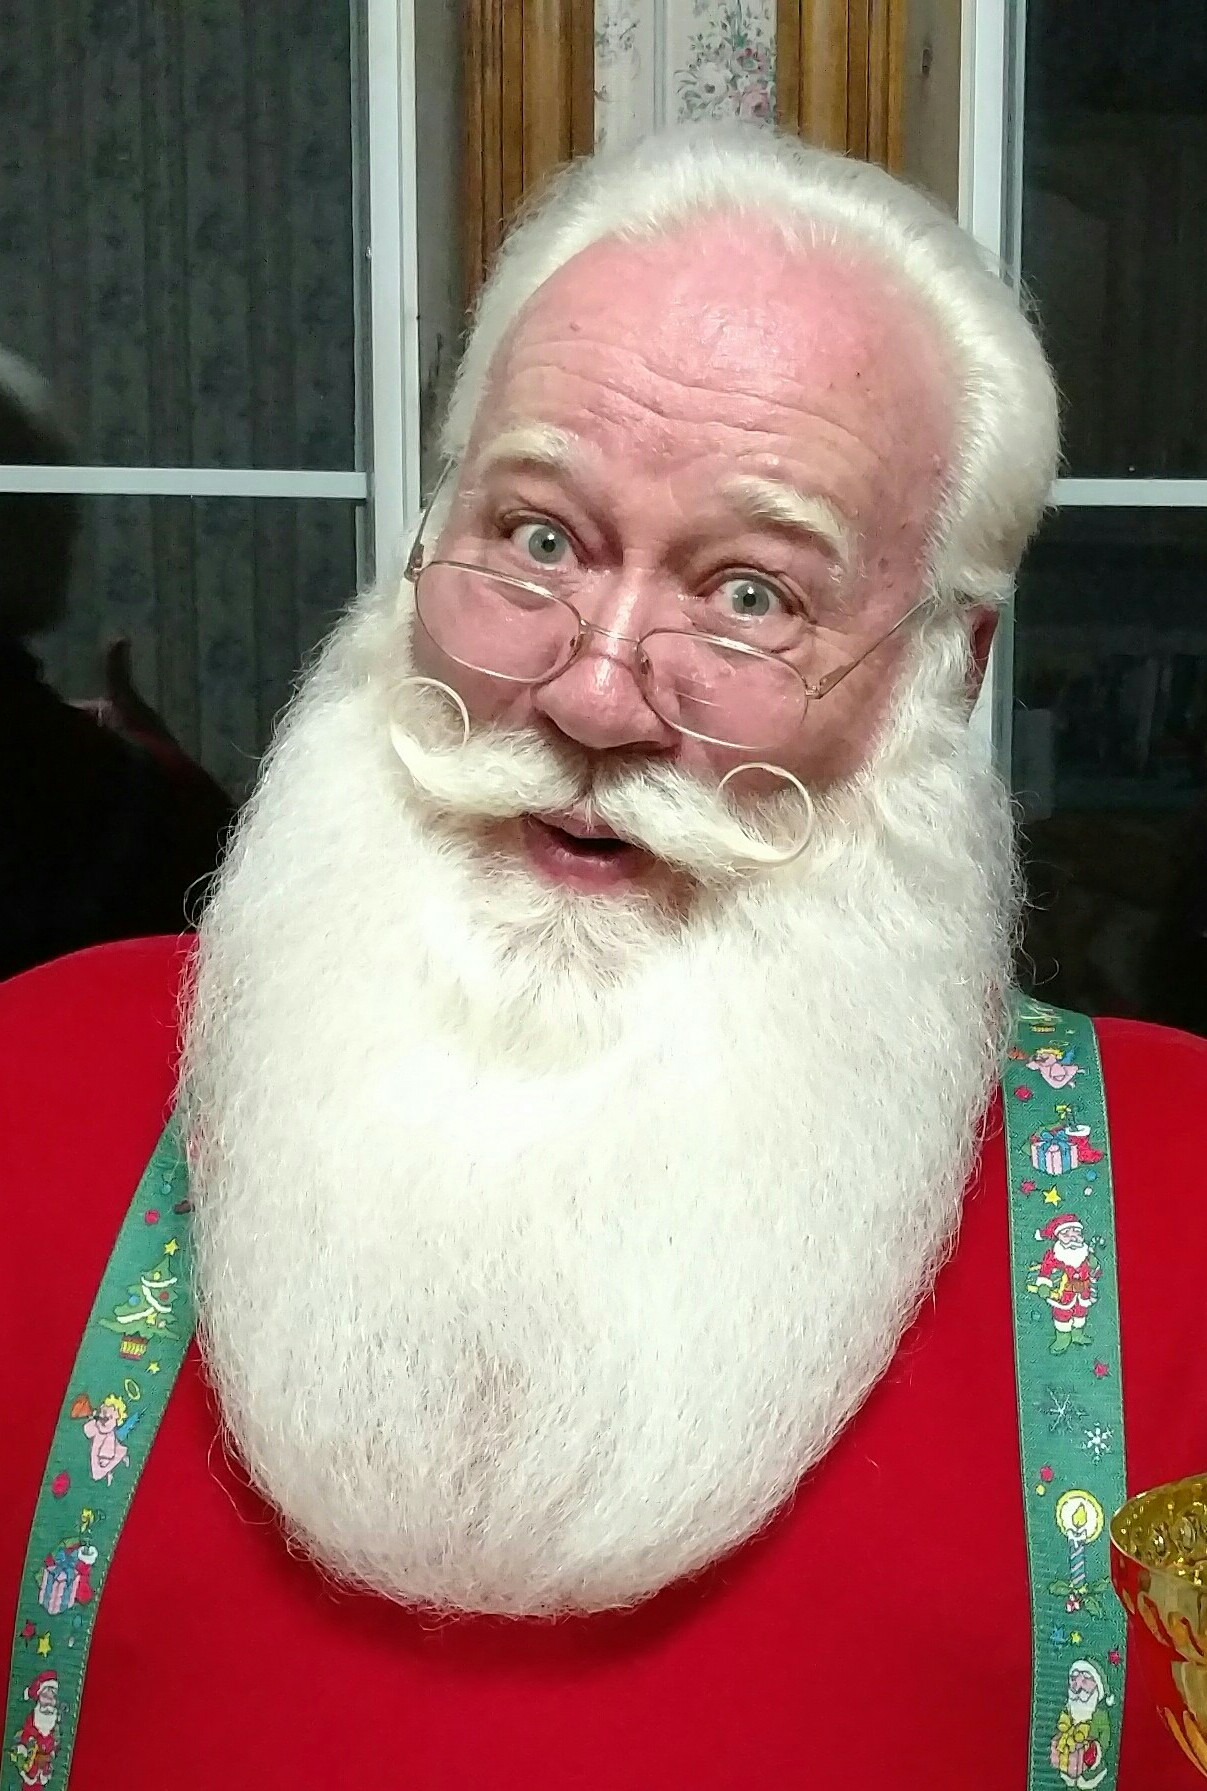 Eric Schmitt-Matzen, who plays Santa Claus, went viral this week for his story about a terminally ill boy dying in his arms.